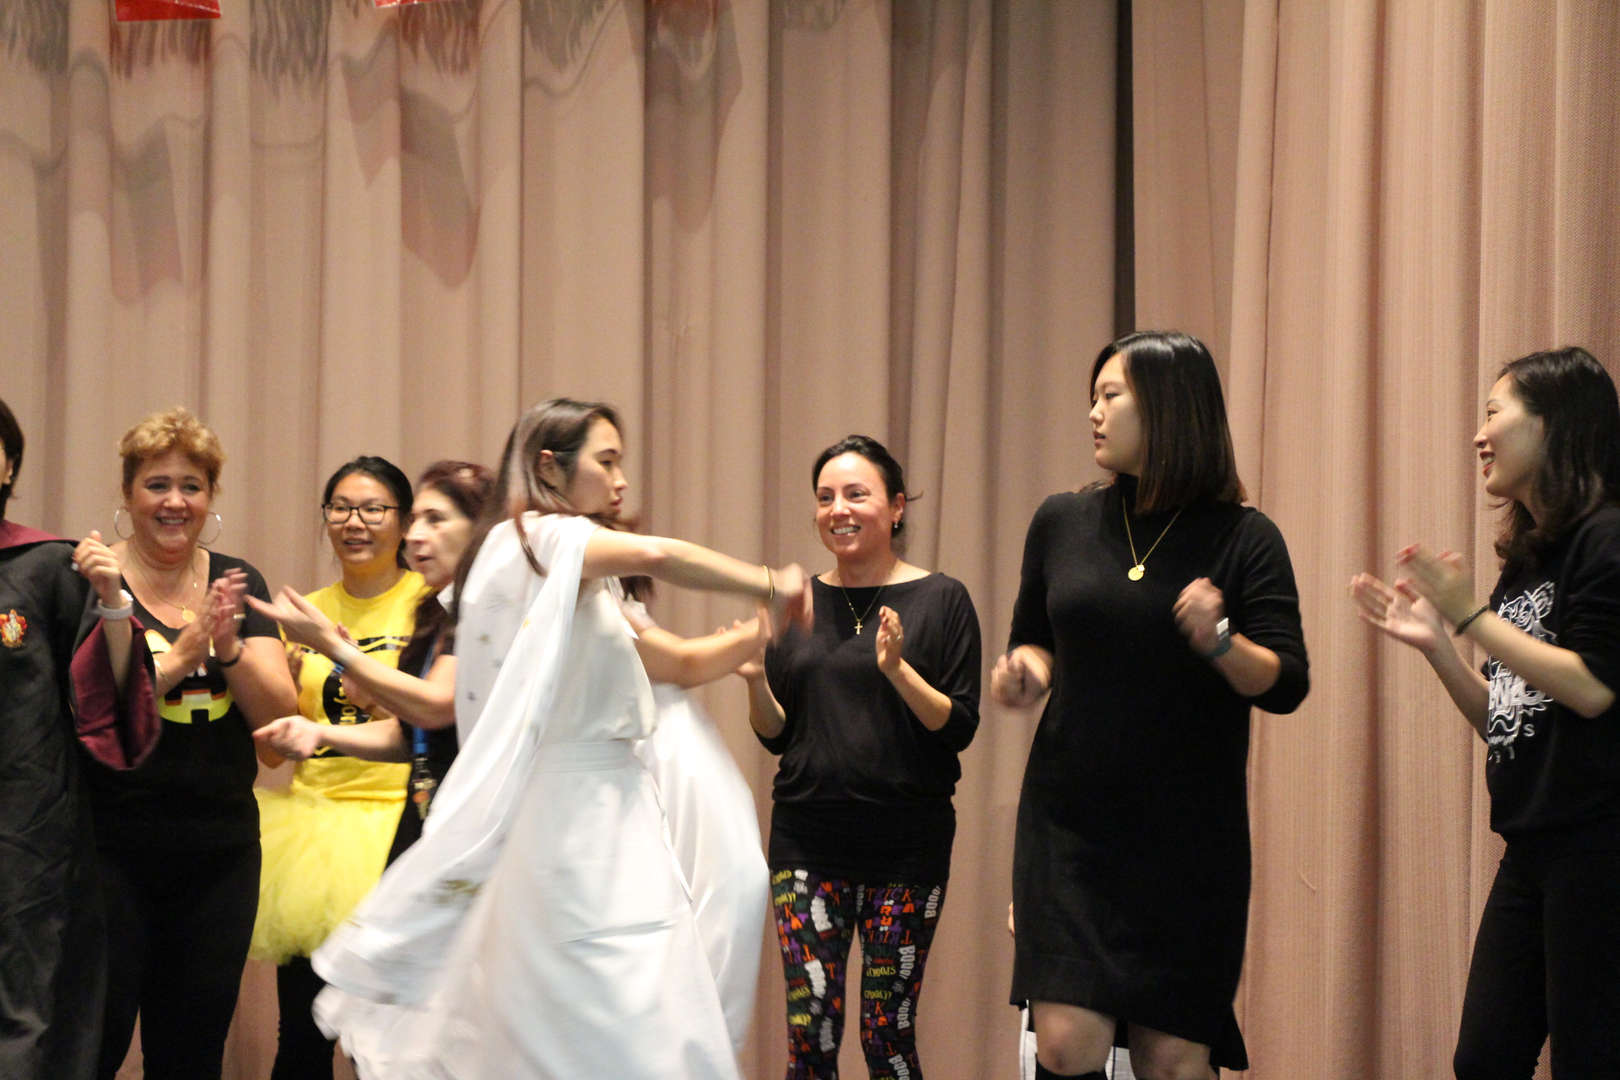 Ms. Liang shows off her dancing skills!